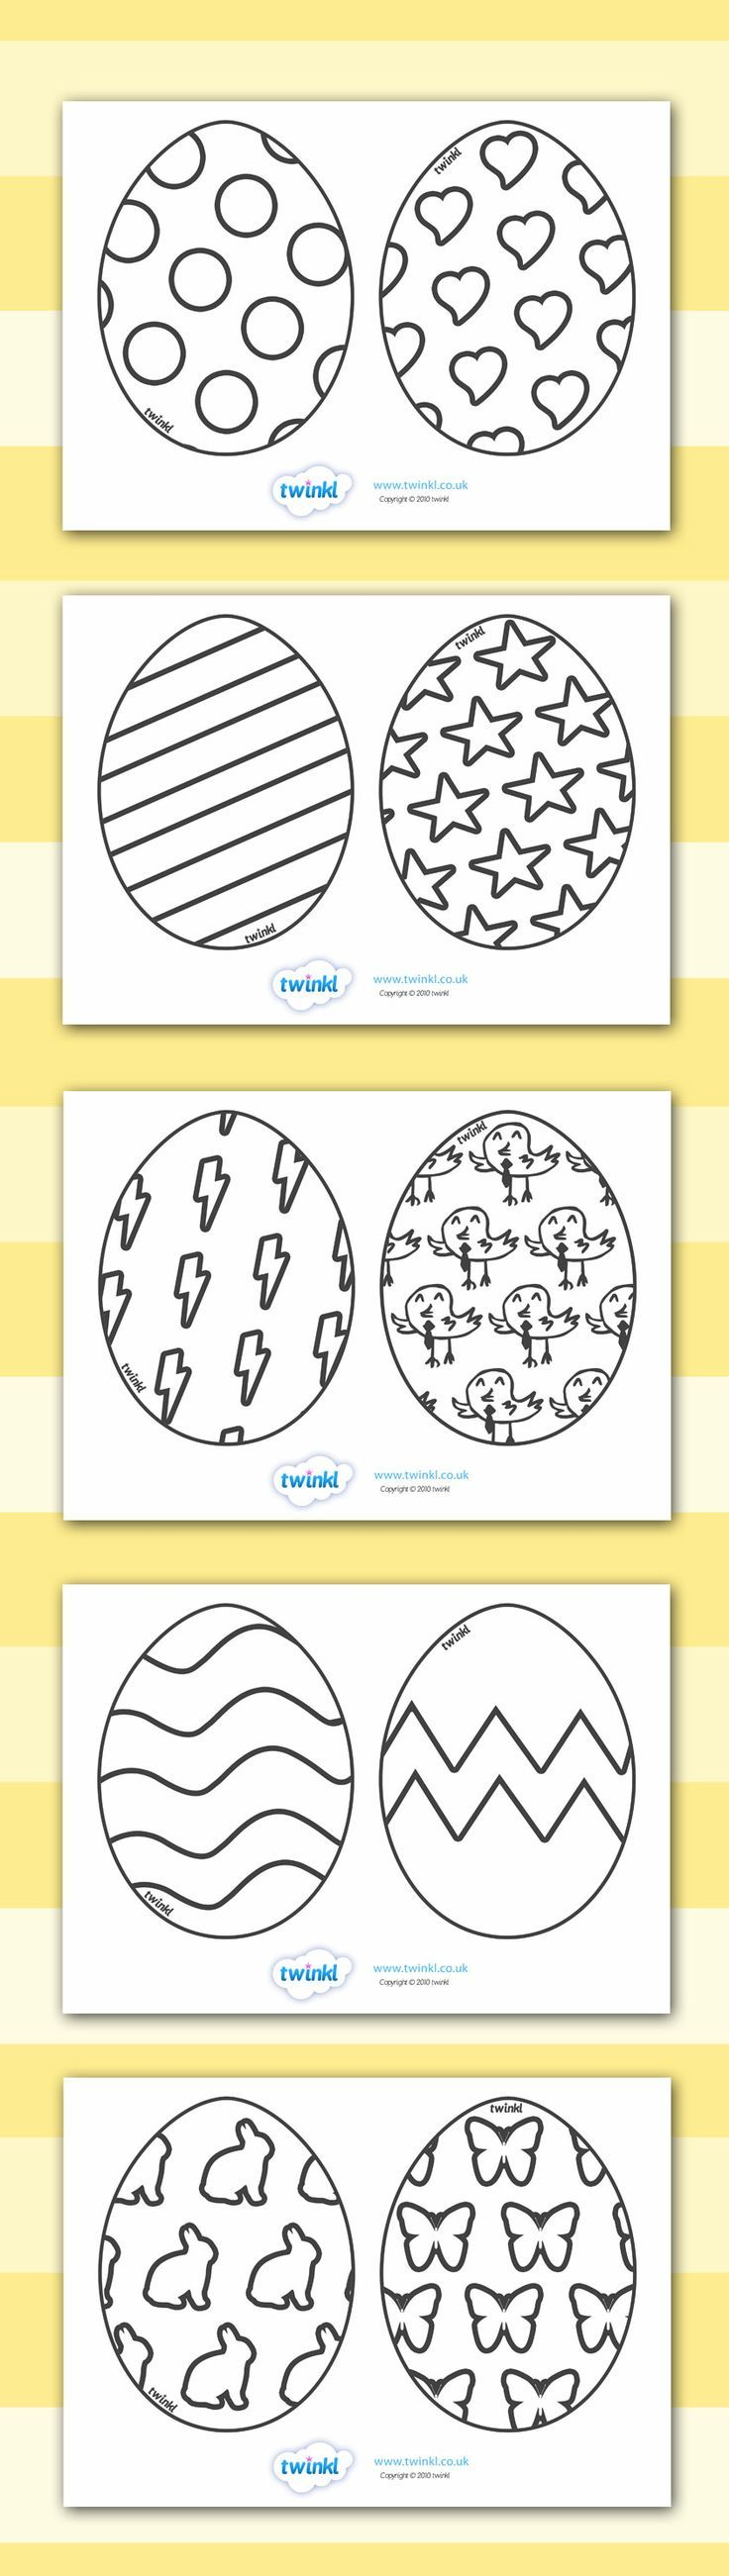 Twinkl Resources >> Easter Egg Templates >> Printable resources for ...